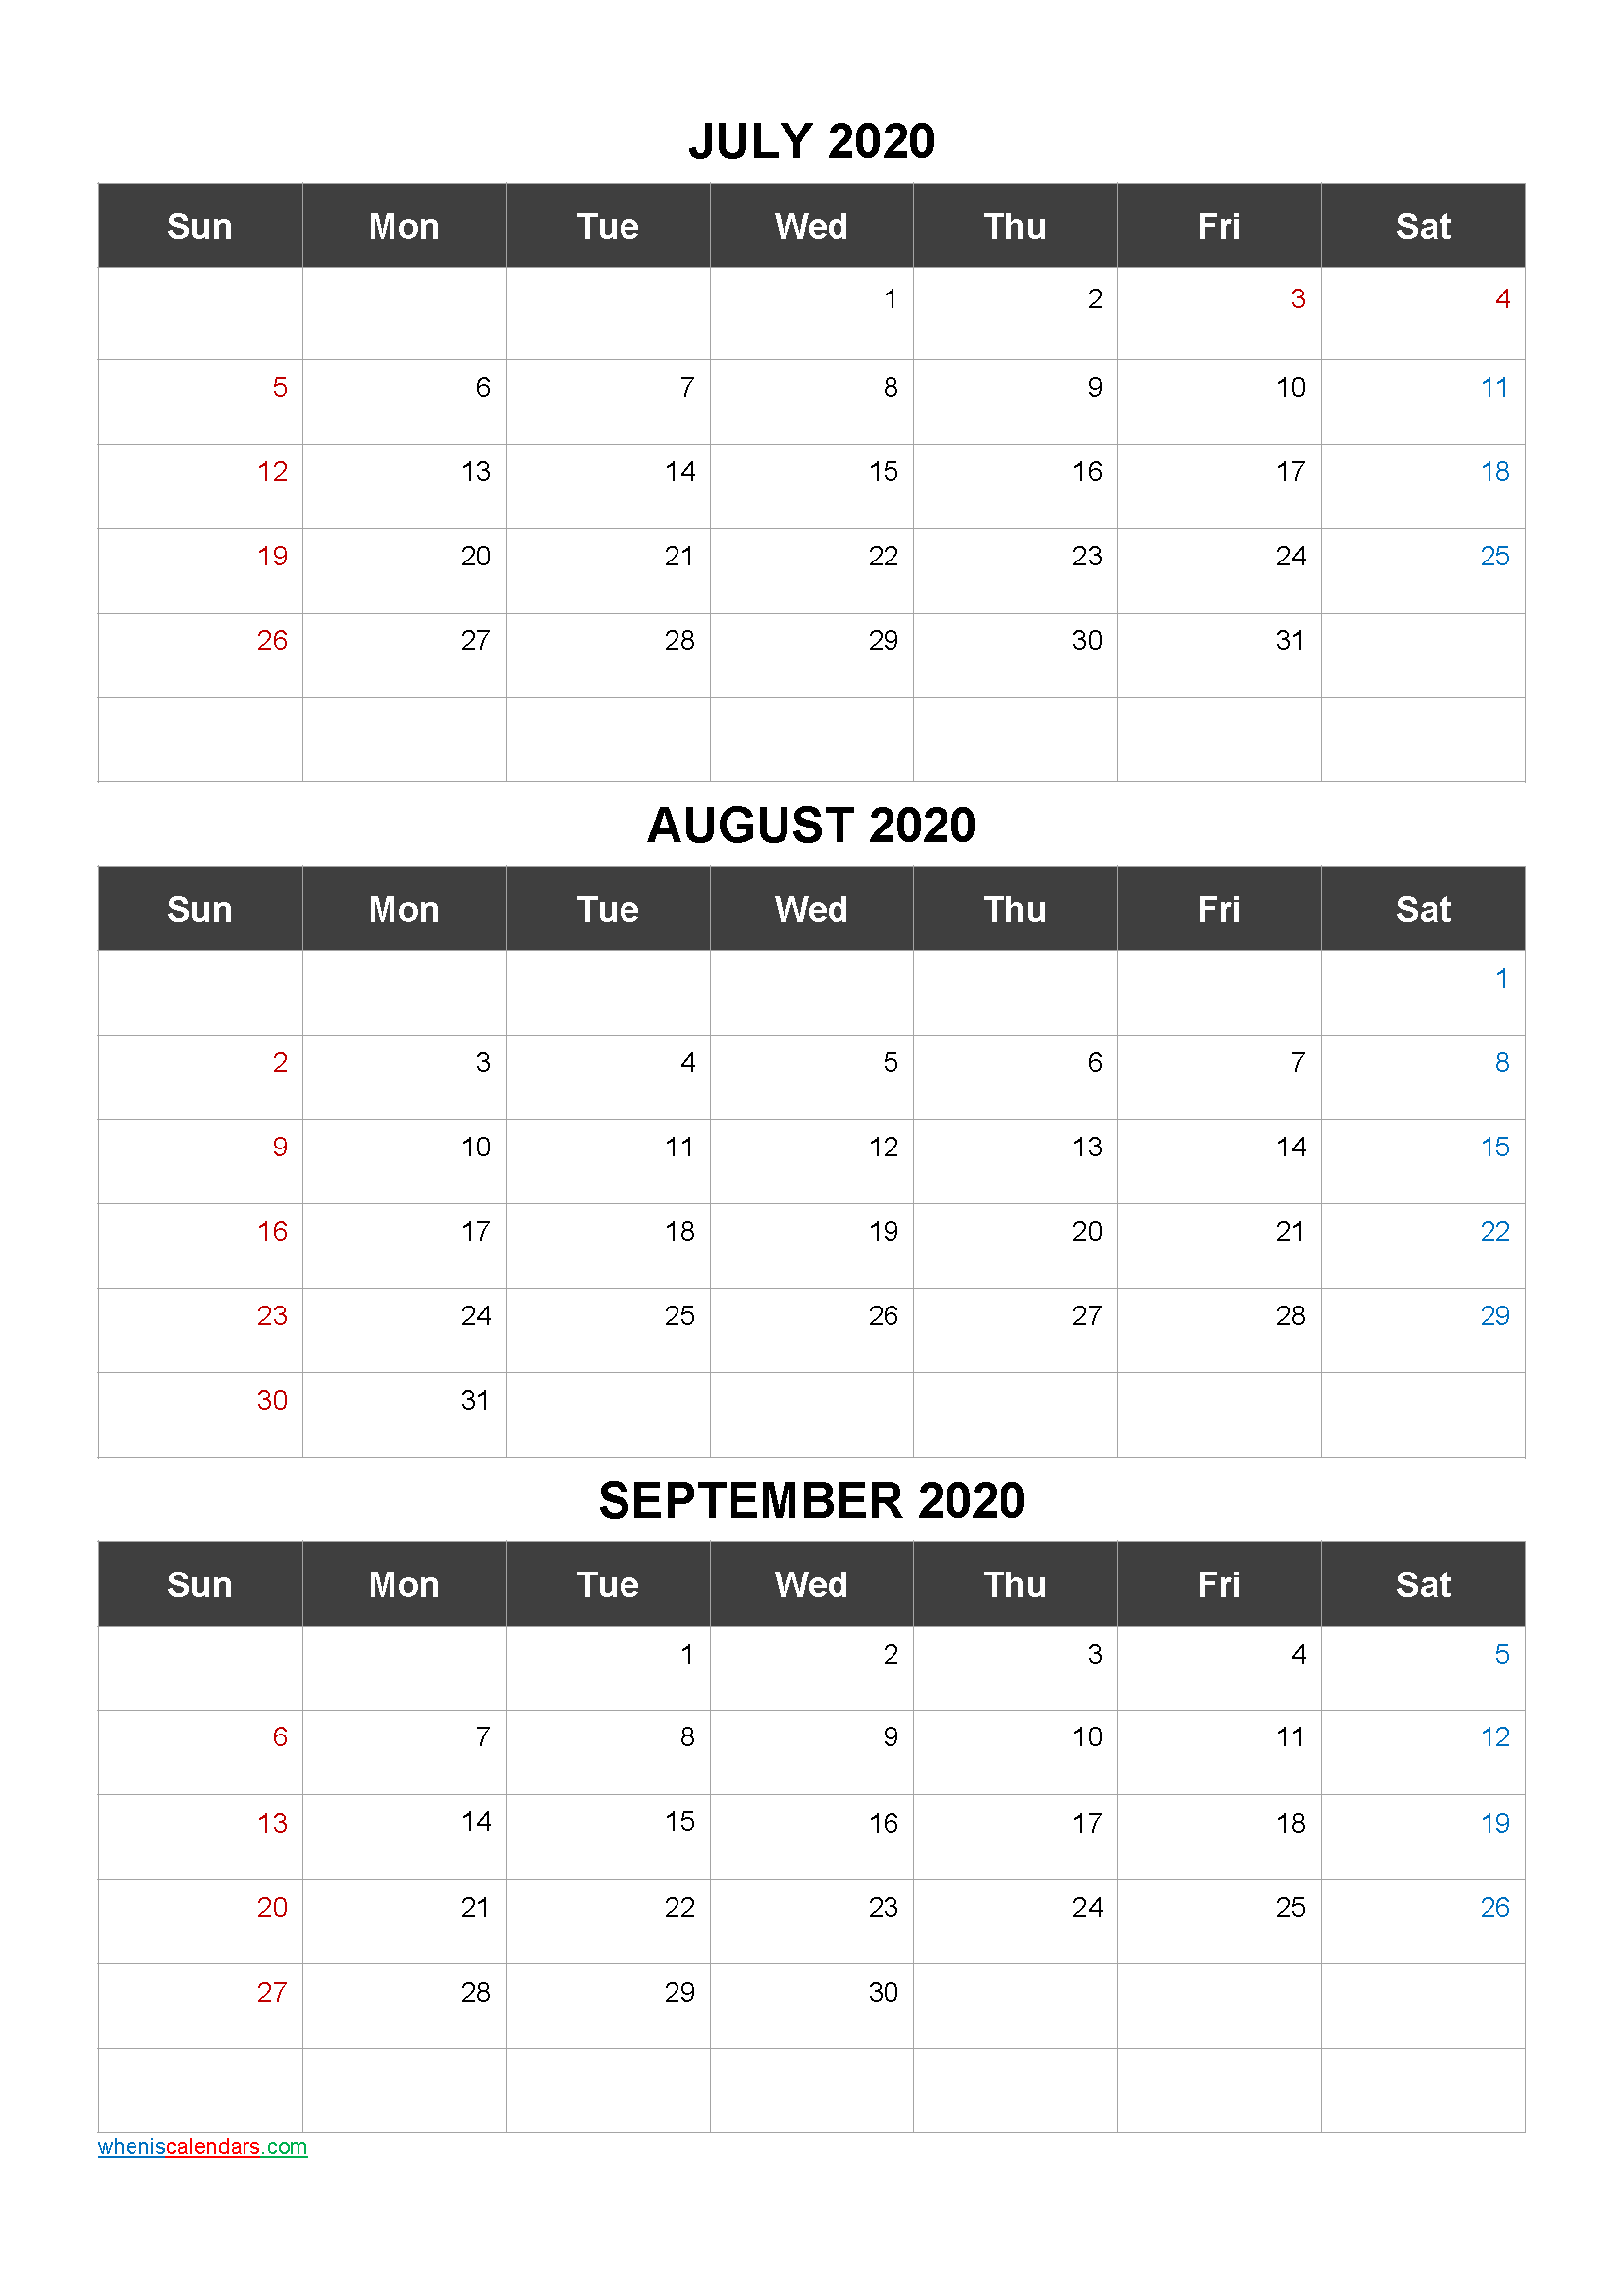 Free Printable 3 Month Calendar2021 July August September